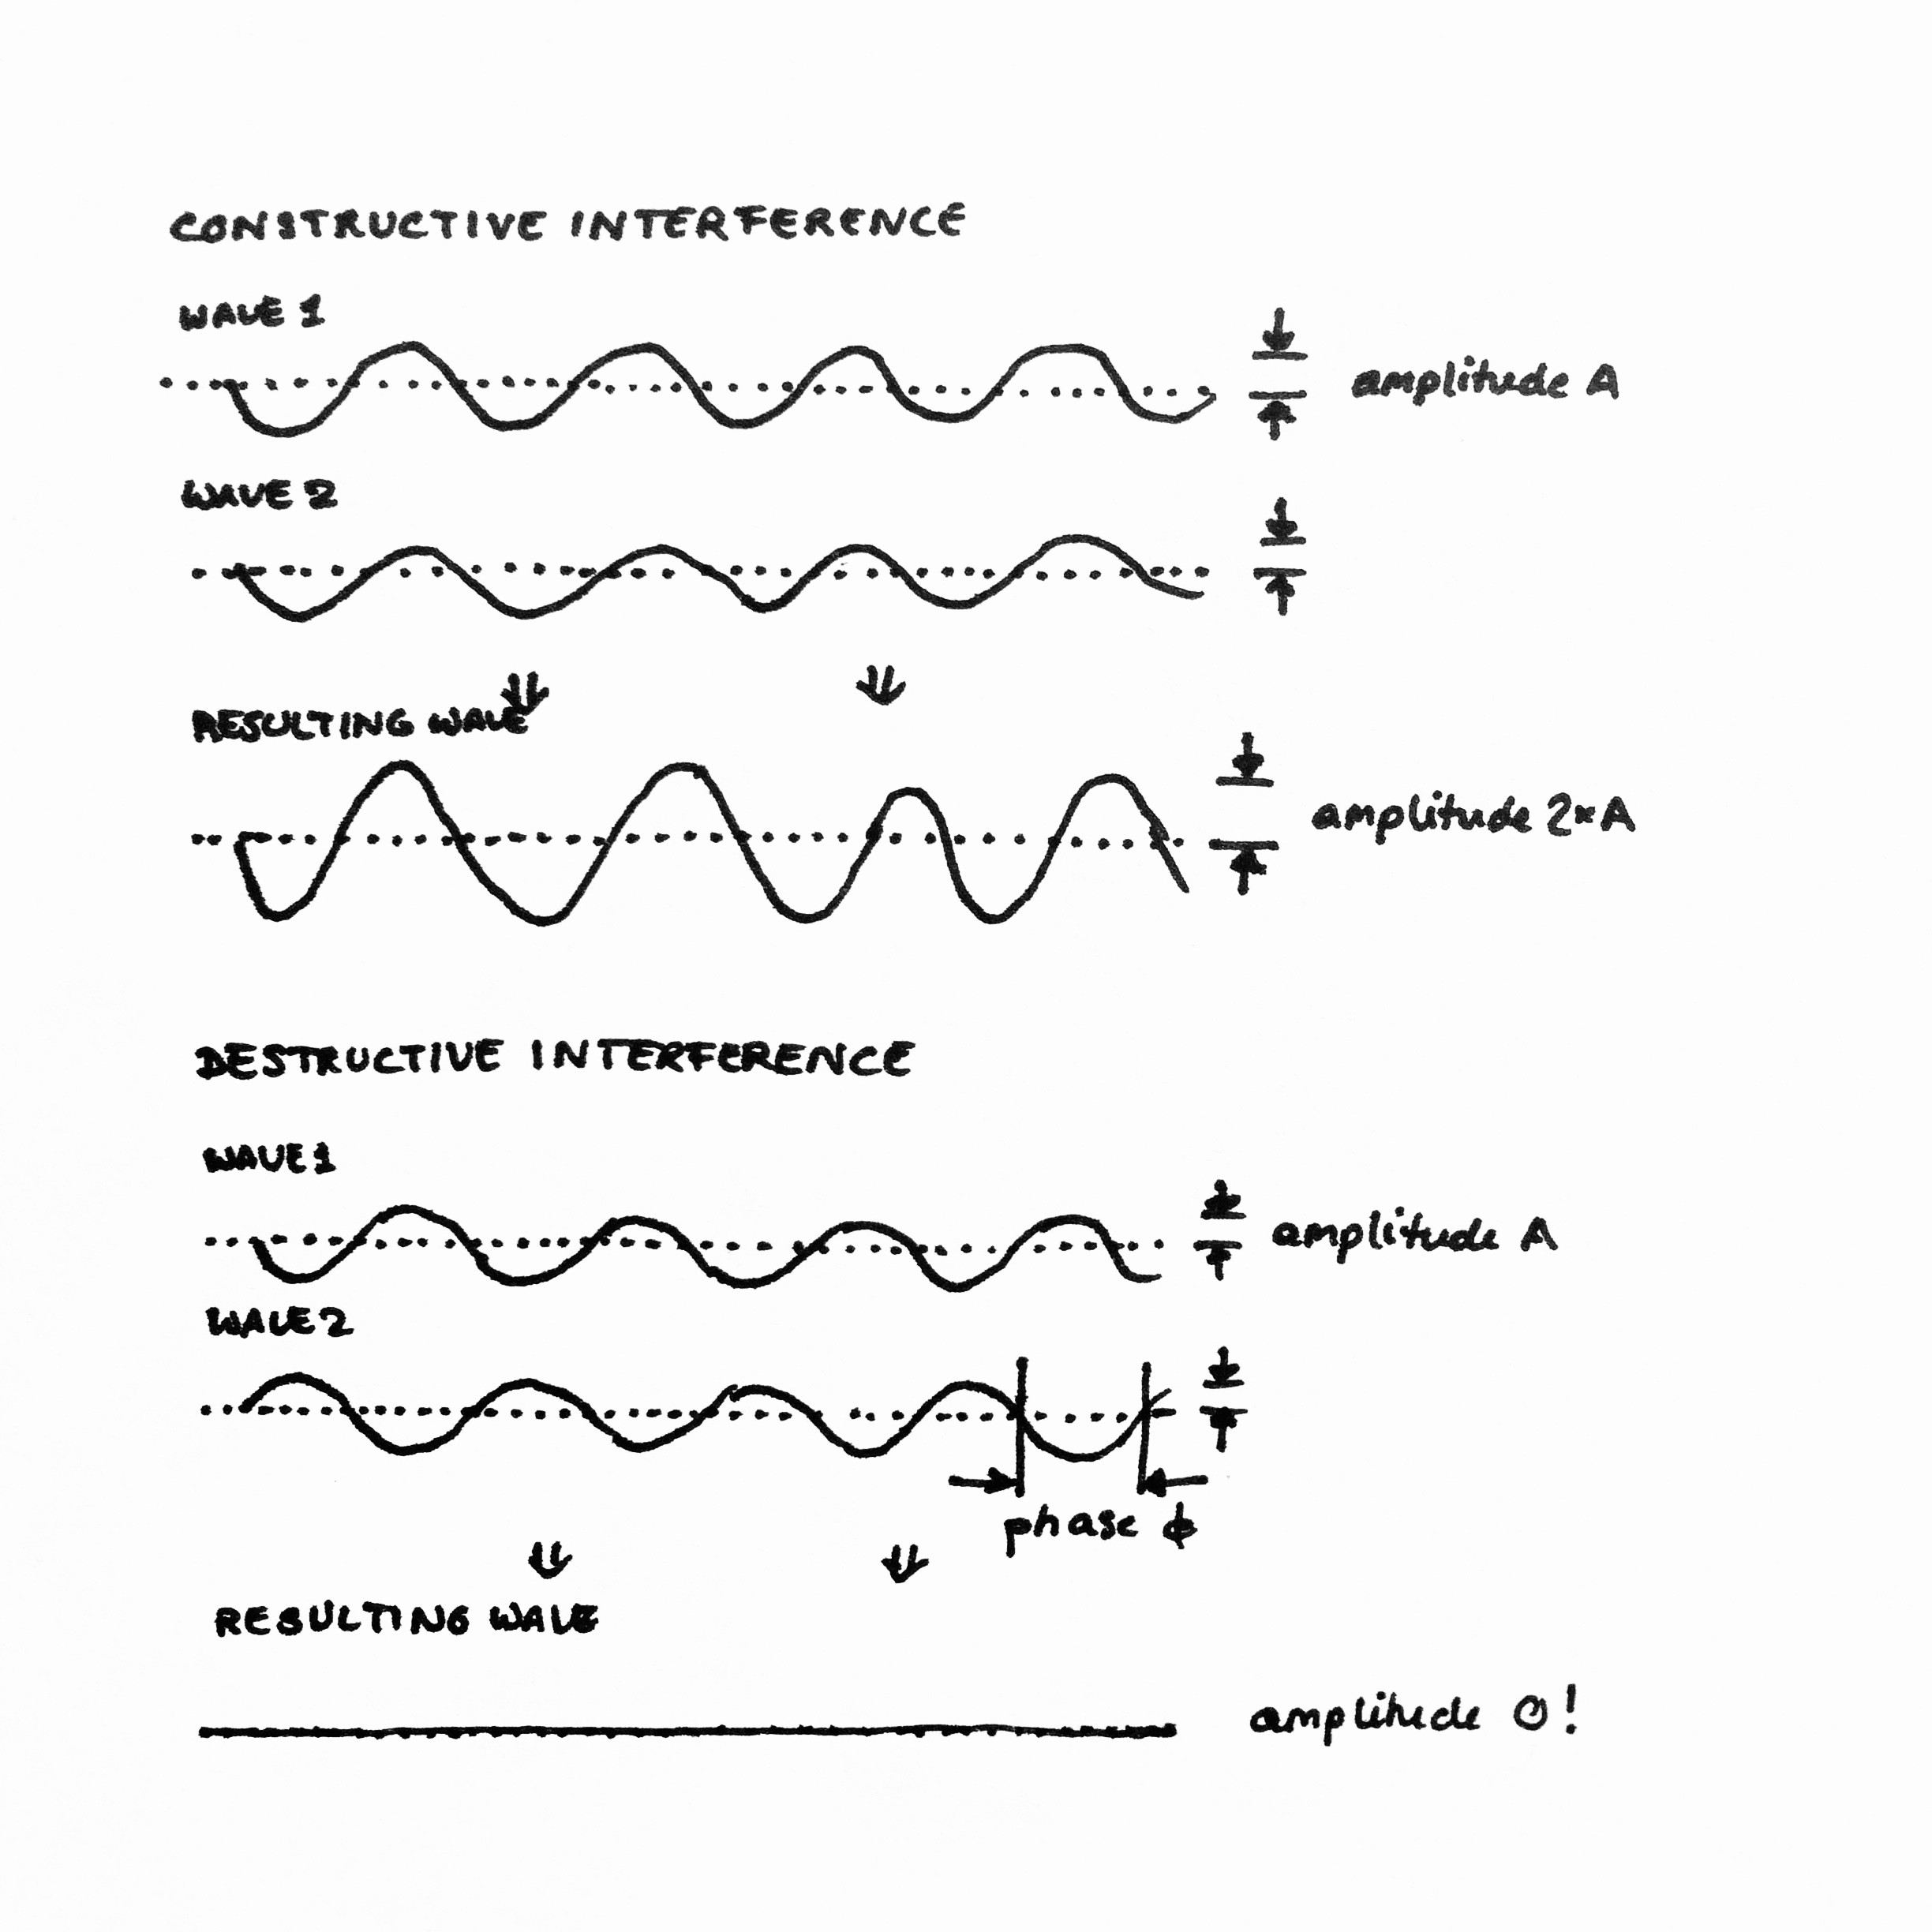 Schematic of destructive and constructive interference of two waves